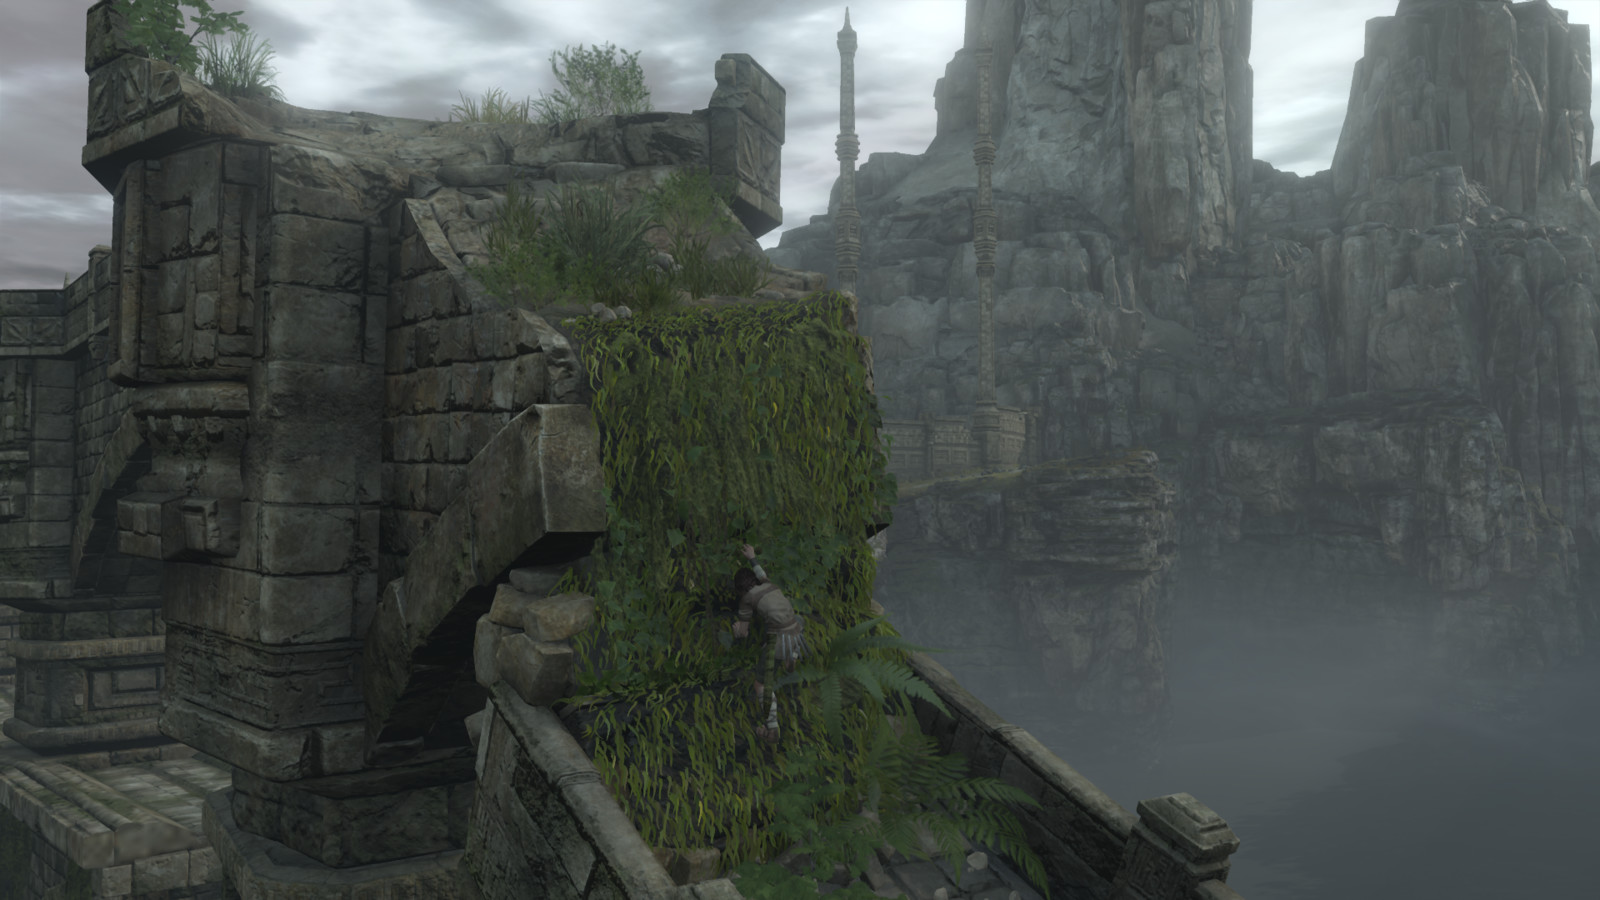 I was responsible for most of this level, including atmospherics. Cliff placement was done by another artist. I placed the vegetation but didn't model it. Some of the cliff models were mine.